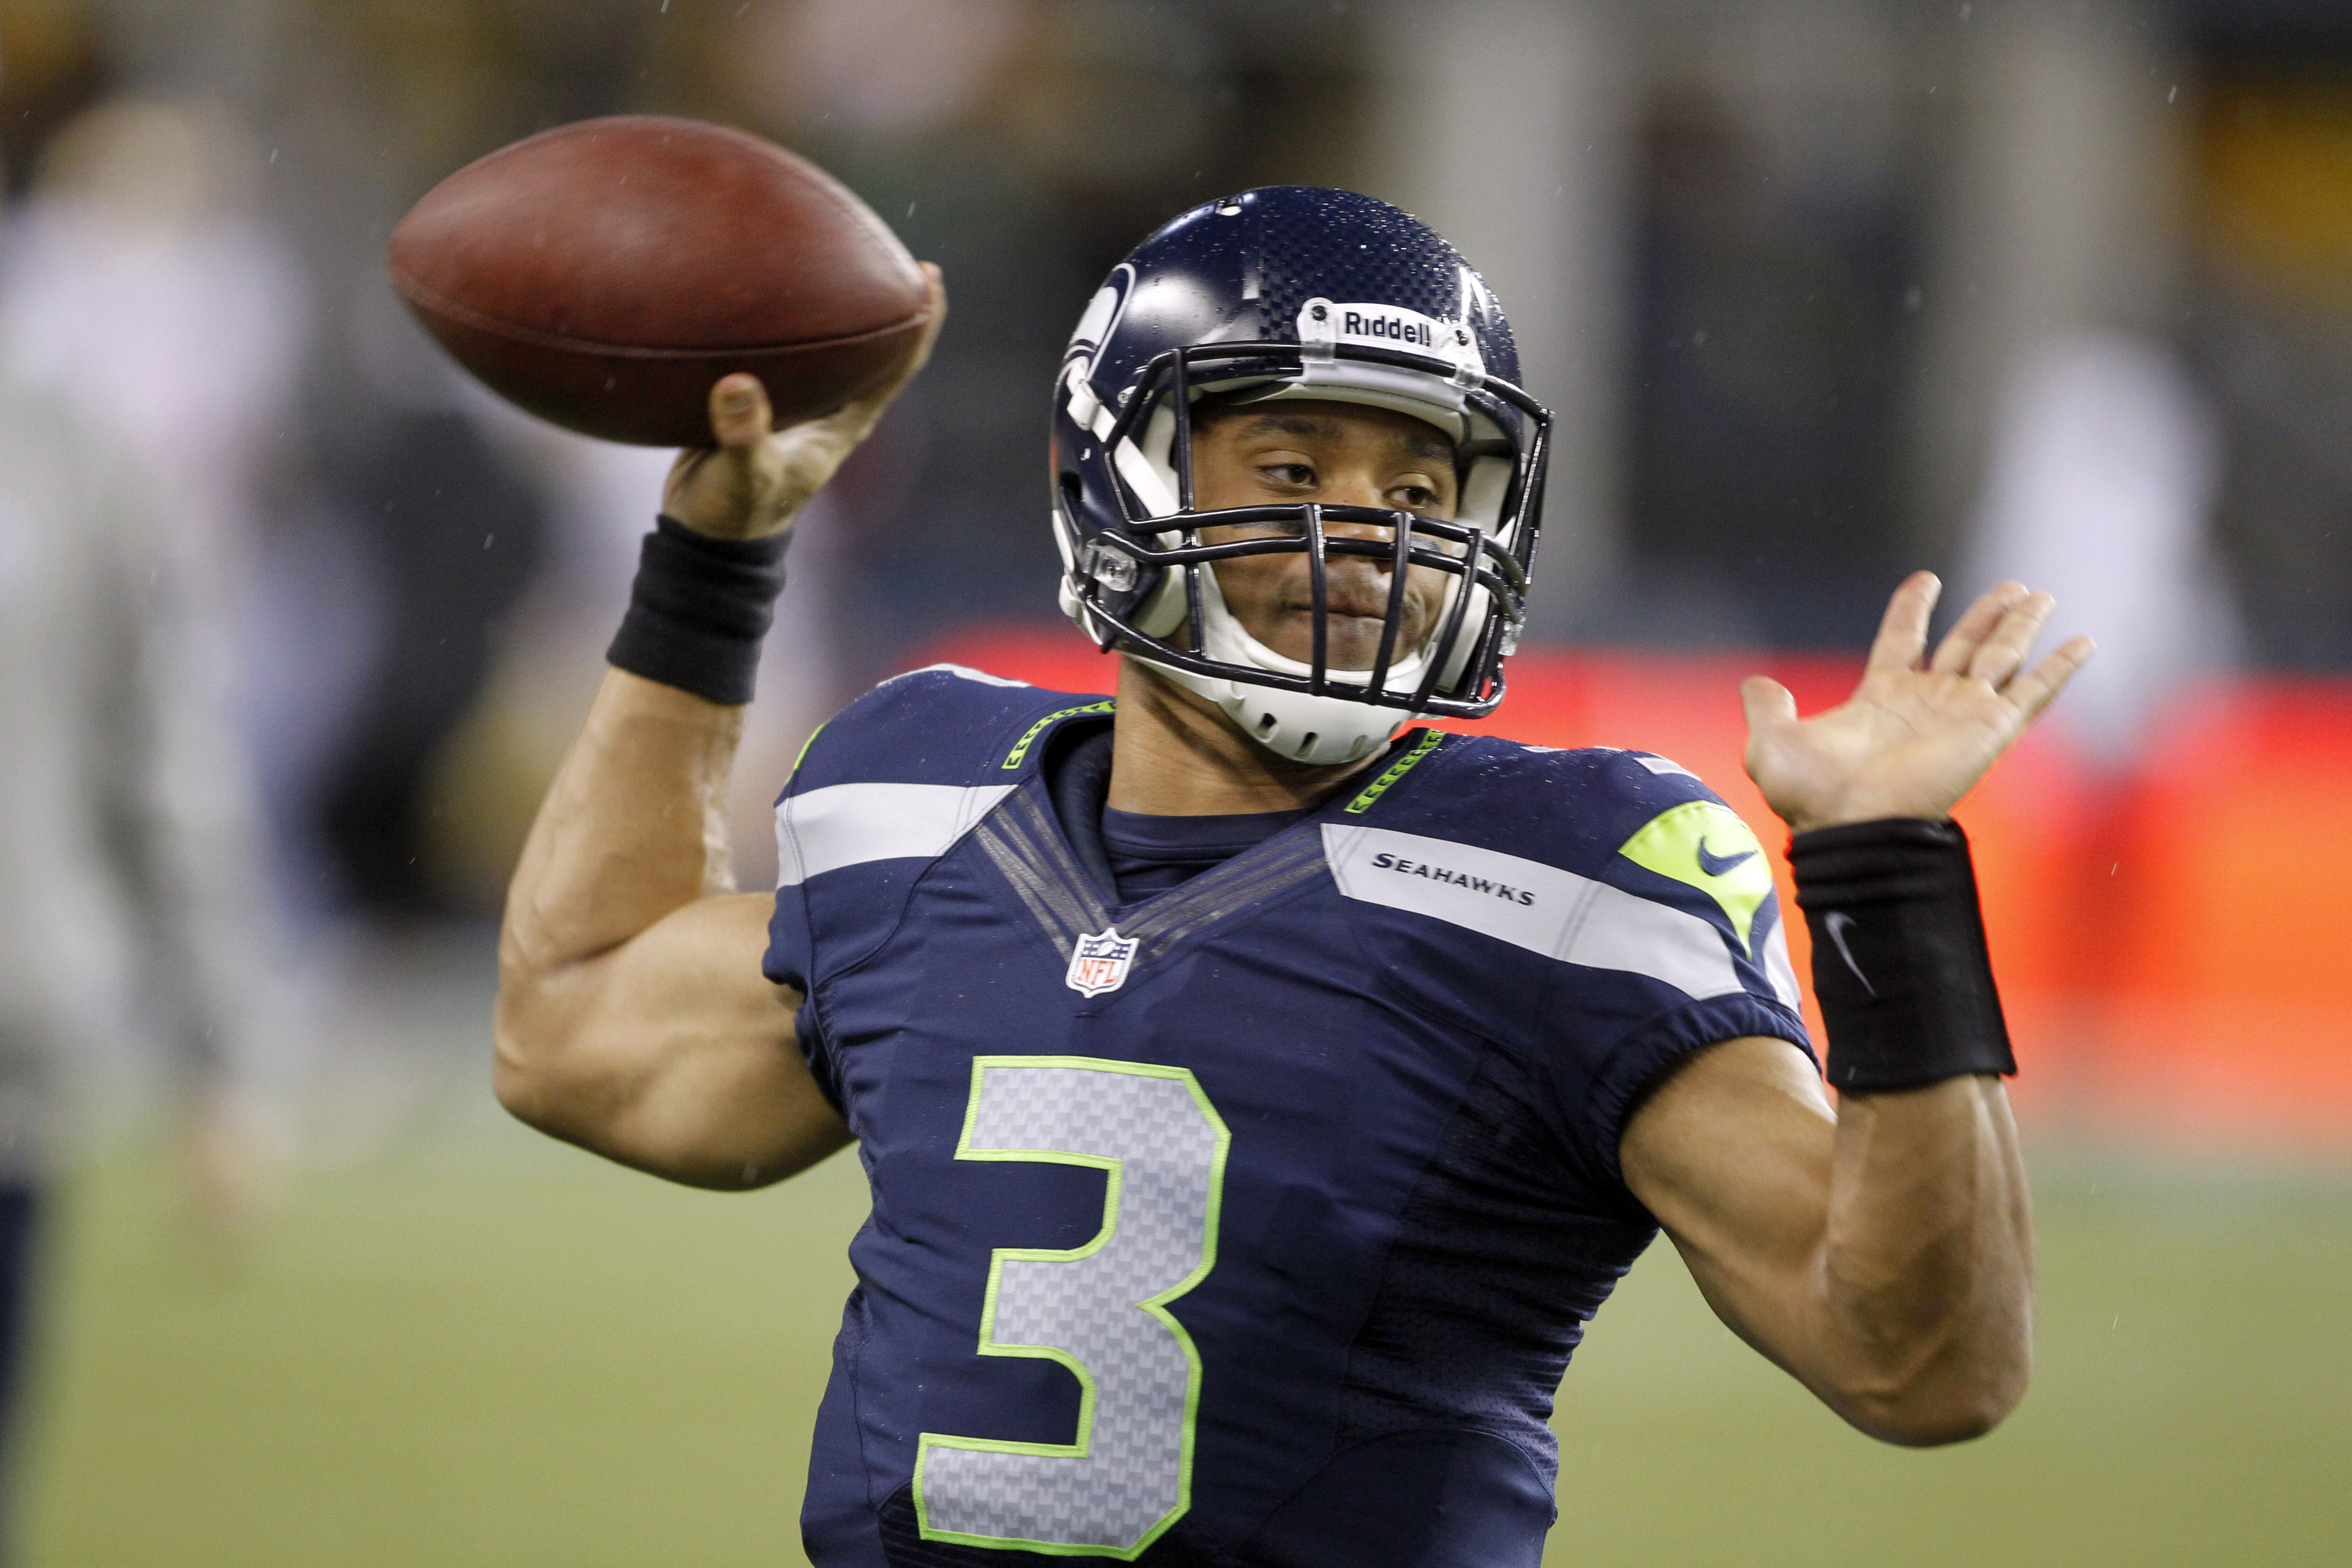 Russell Wilson has some gigantic triceps